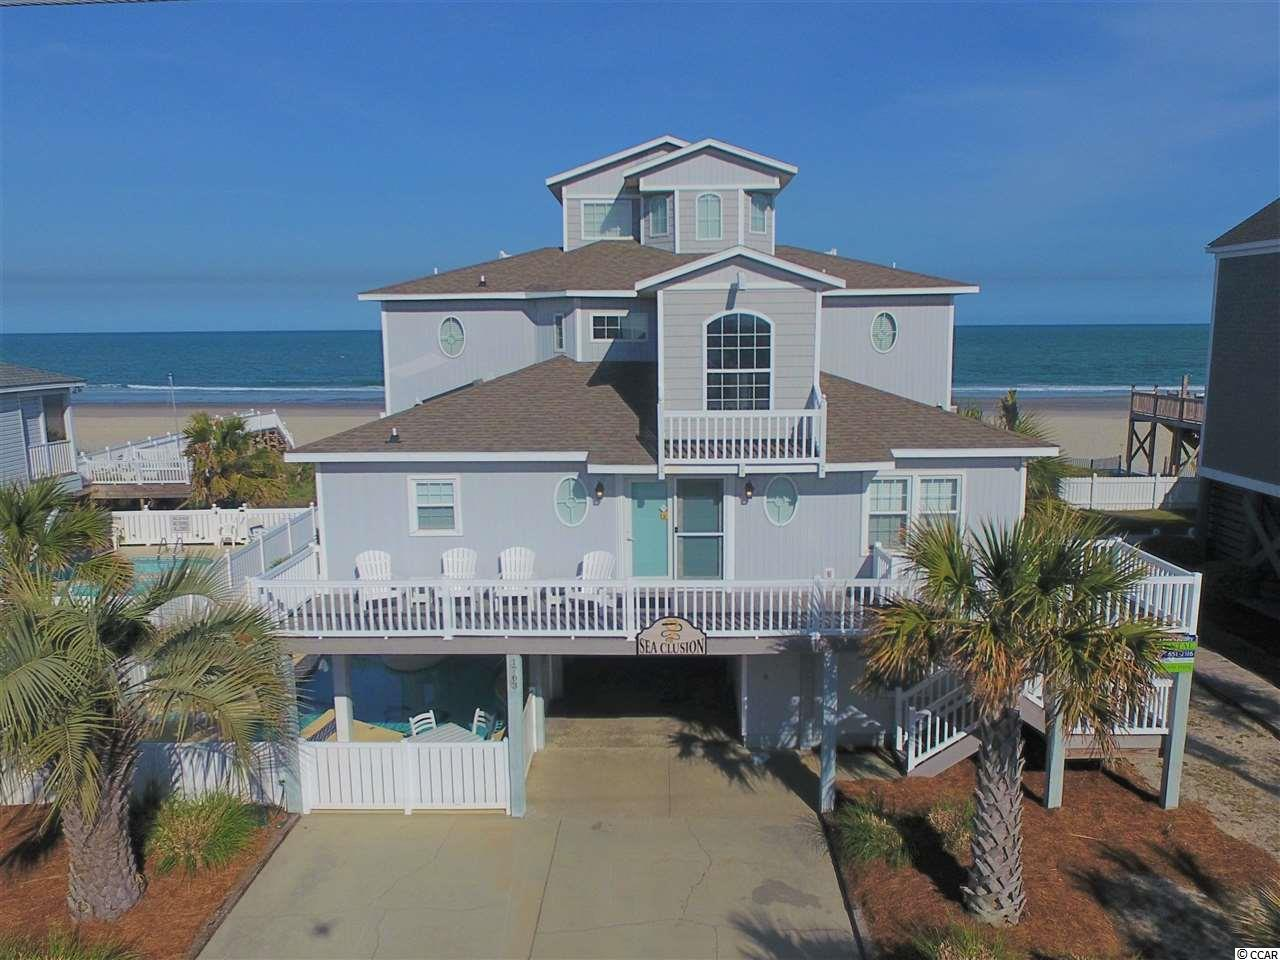 "Welcome to your new ""Sea Clusion"" at the beach.  This 7-bedroom, 5-bath beach home sits on one of the premier large oceanfront lots on the South-end of Garden City Beach, South Carolina.  This home underwent a major renovation in 2016.  During the renovations, the flooring was replaced throughout the entire house.  The kitchen and bathrooms were completely gutted.  The sheet rock, insulation, electrical, plumbing and interior doors were replaced on the first two floors (top two floors were added in 1995).  All furniture was replaced and picked out my a professional interior decorator.  A private heated pool helps generate great rental income and makes this house an excellent investment property.  This beach home is in immaculate shape and ready for a new owner.  Contact the listing agent, or your Realtor, to set up a private showing."